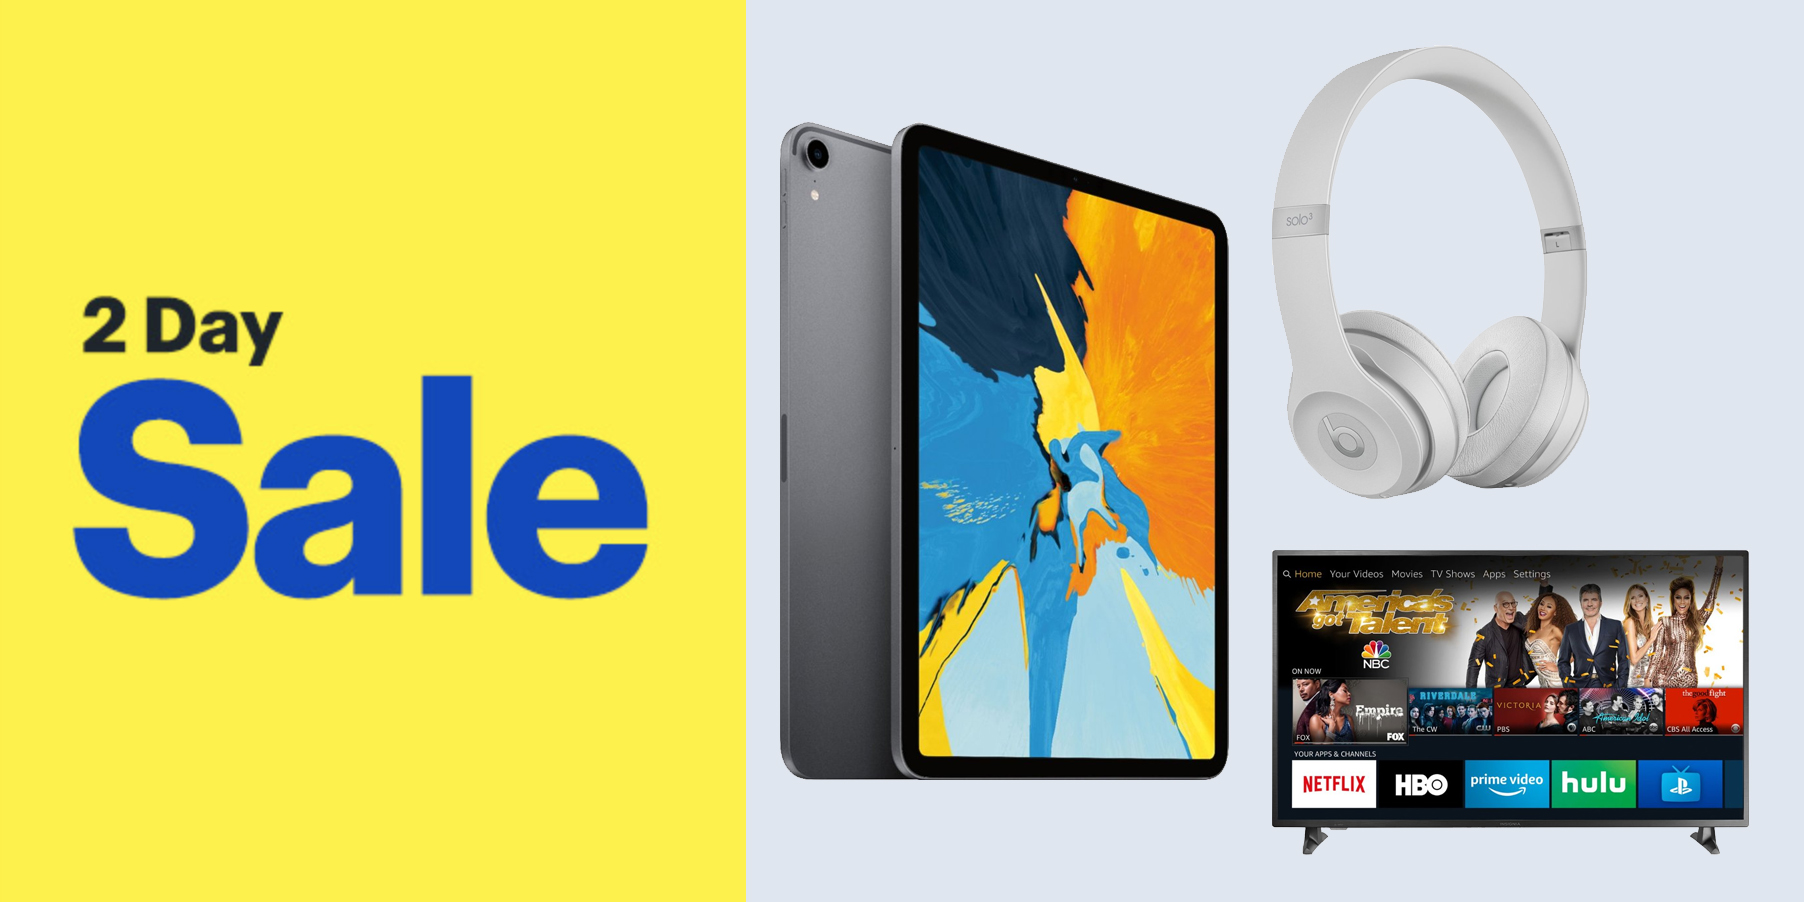 photo image Best Buy's new 2-day sale takes $150 off the latest iPad Pro, deals on Beats, TVs, more